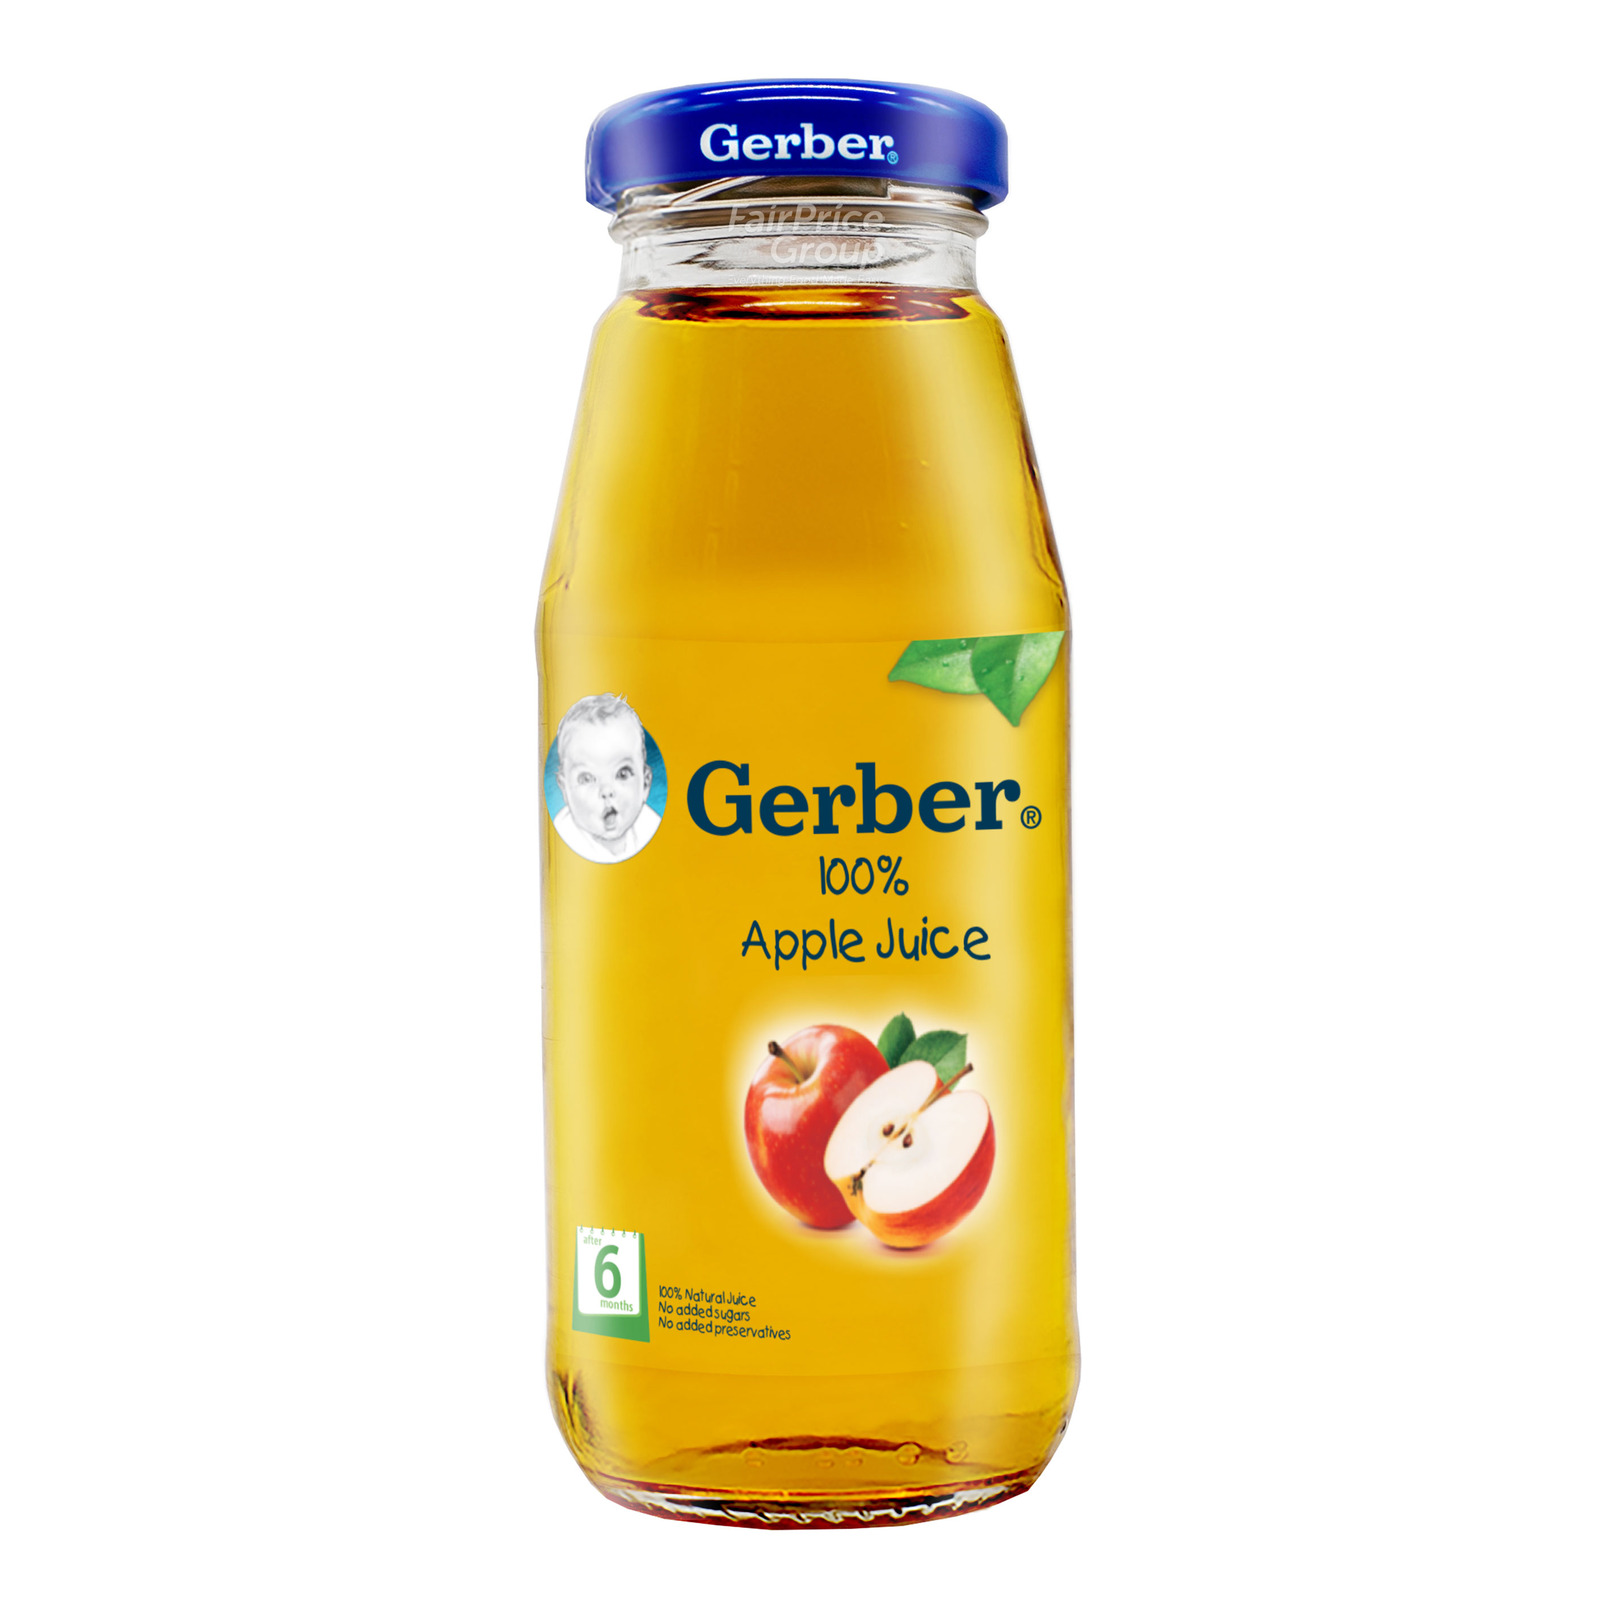 Gerber 100% Natural Juice - Apple